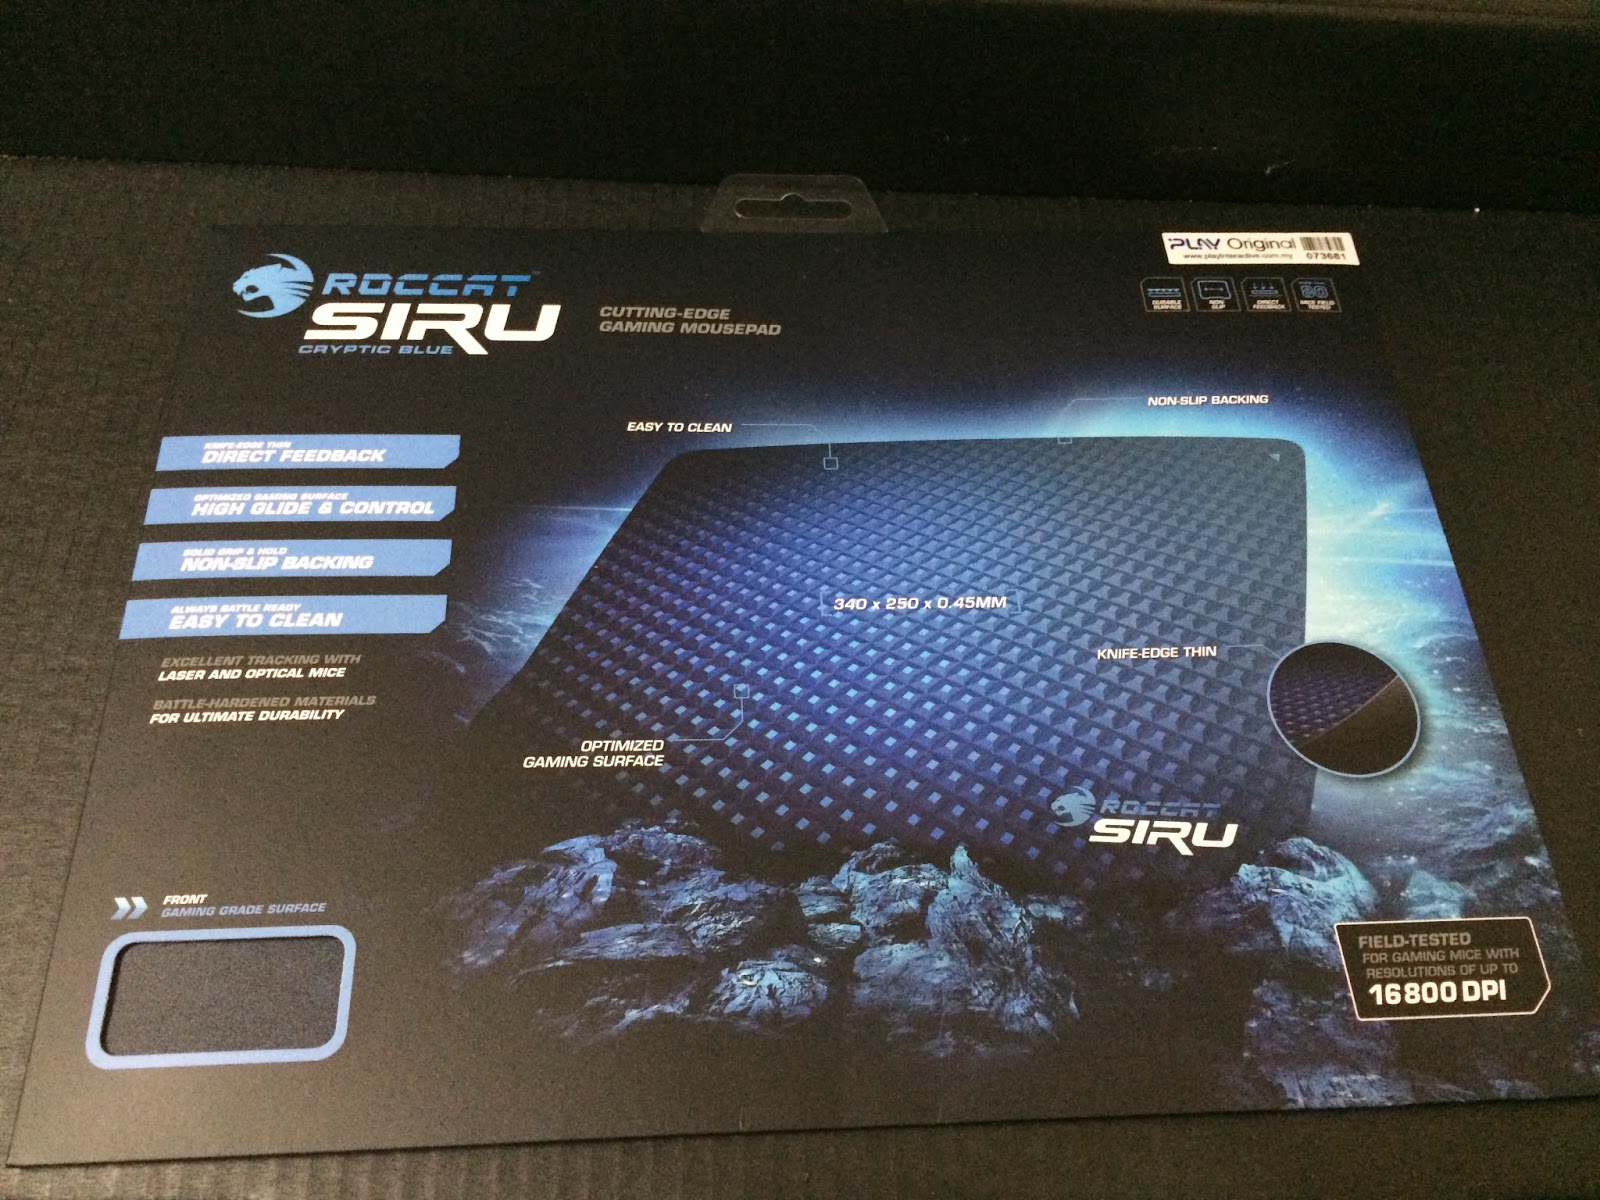 Unboxing & Review - ROCCAT SIRU 32